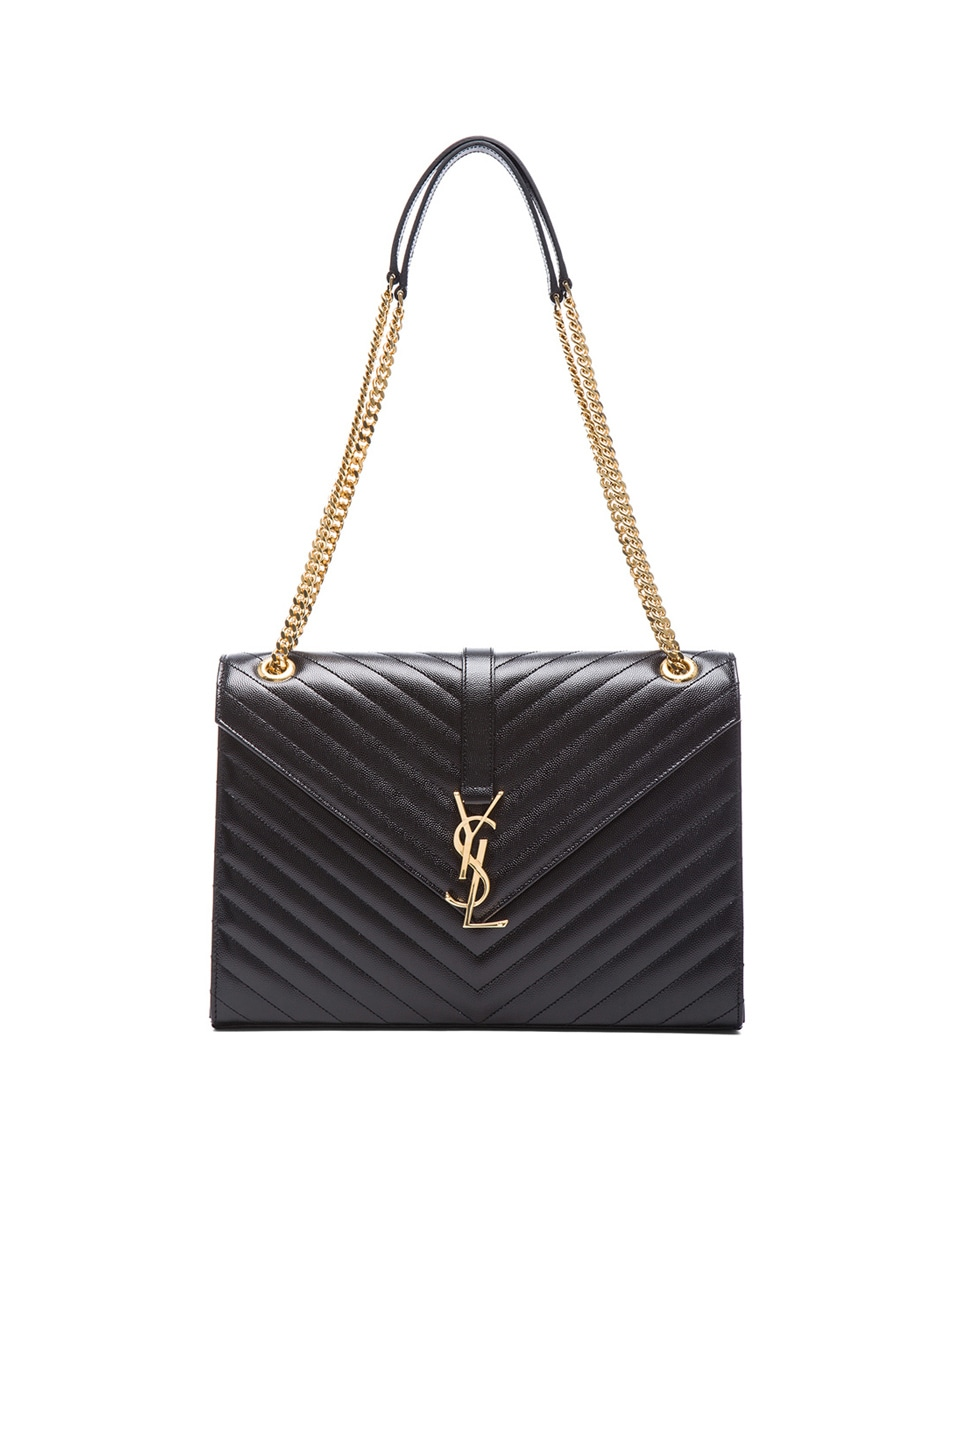 f19b014647 Image 1 of Saint Laurent Large Monogramme Envelope Chain Bag in Black